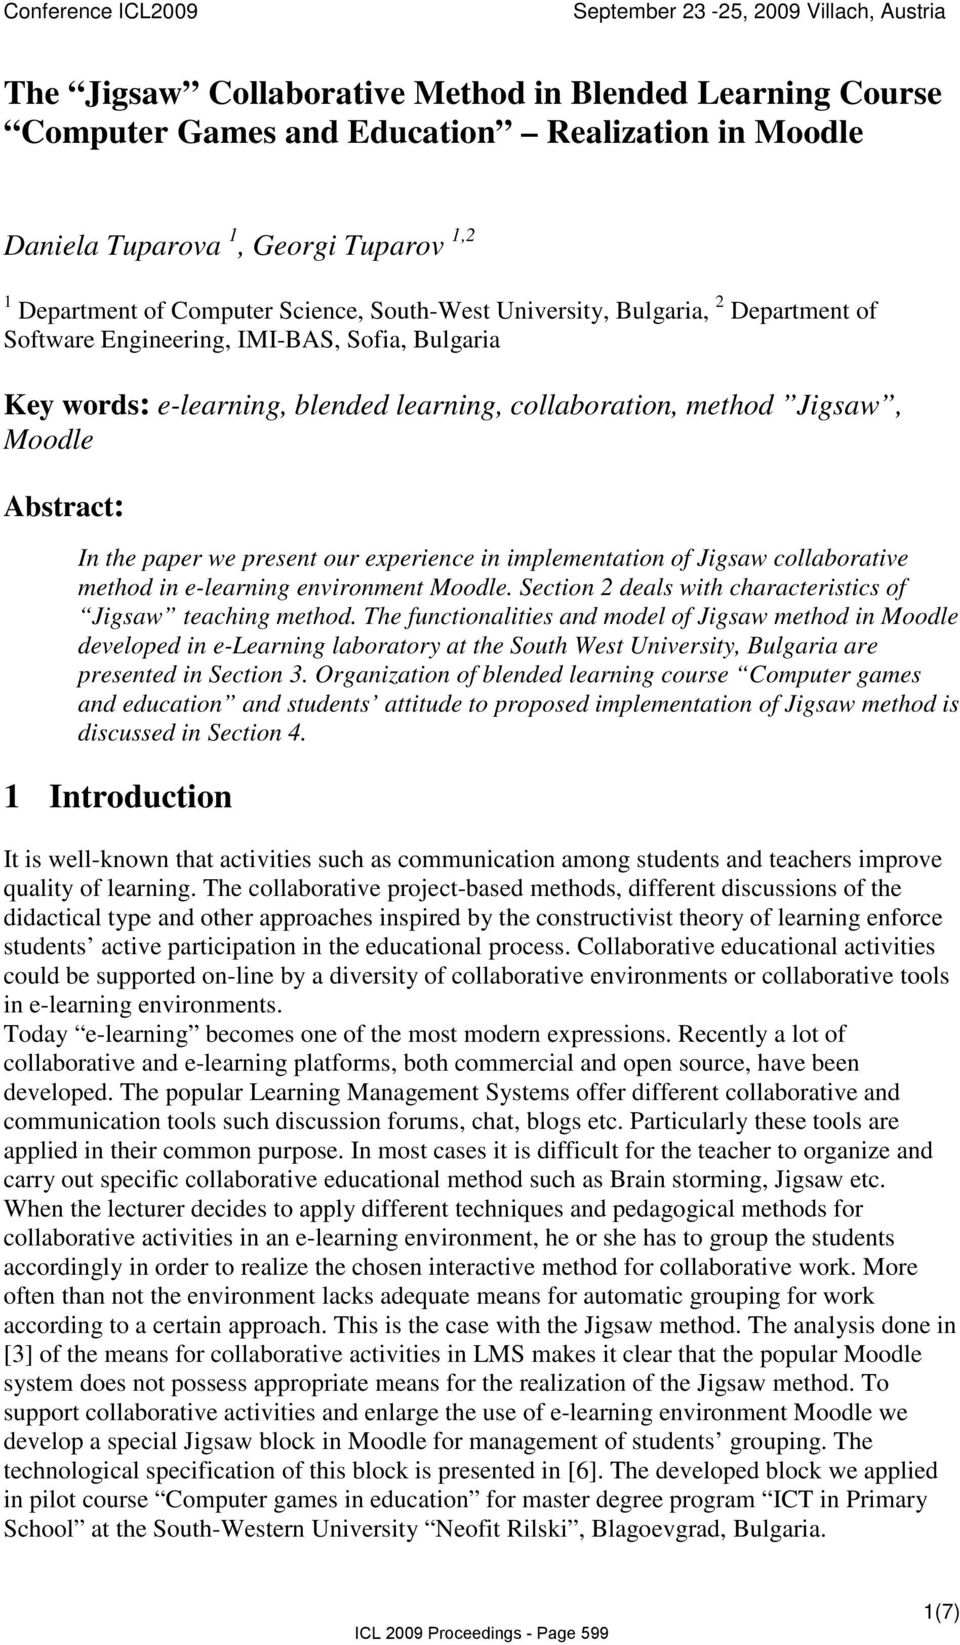 our experience in implementation of Jigsaw collaborative method in e-learning environment Moodle. Section 2 deals with characteristics of Jigsaw teaching method.